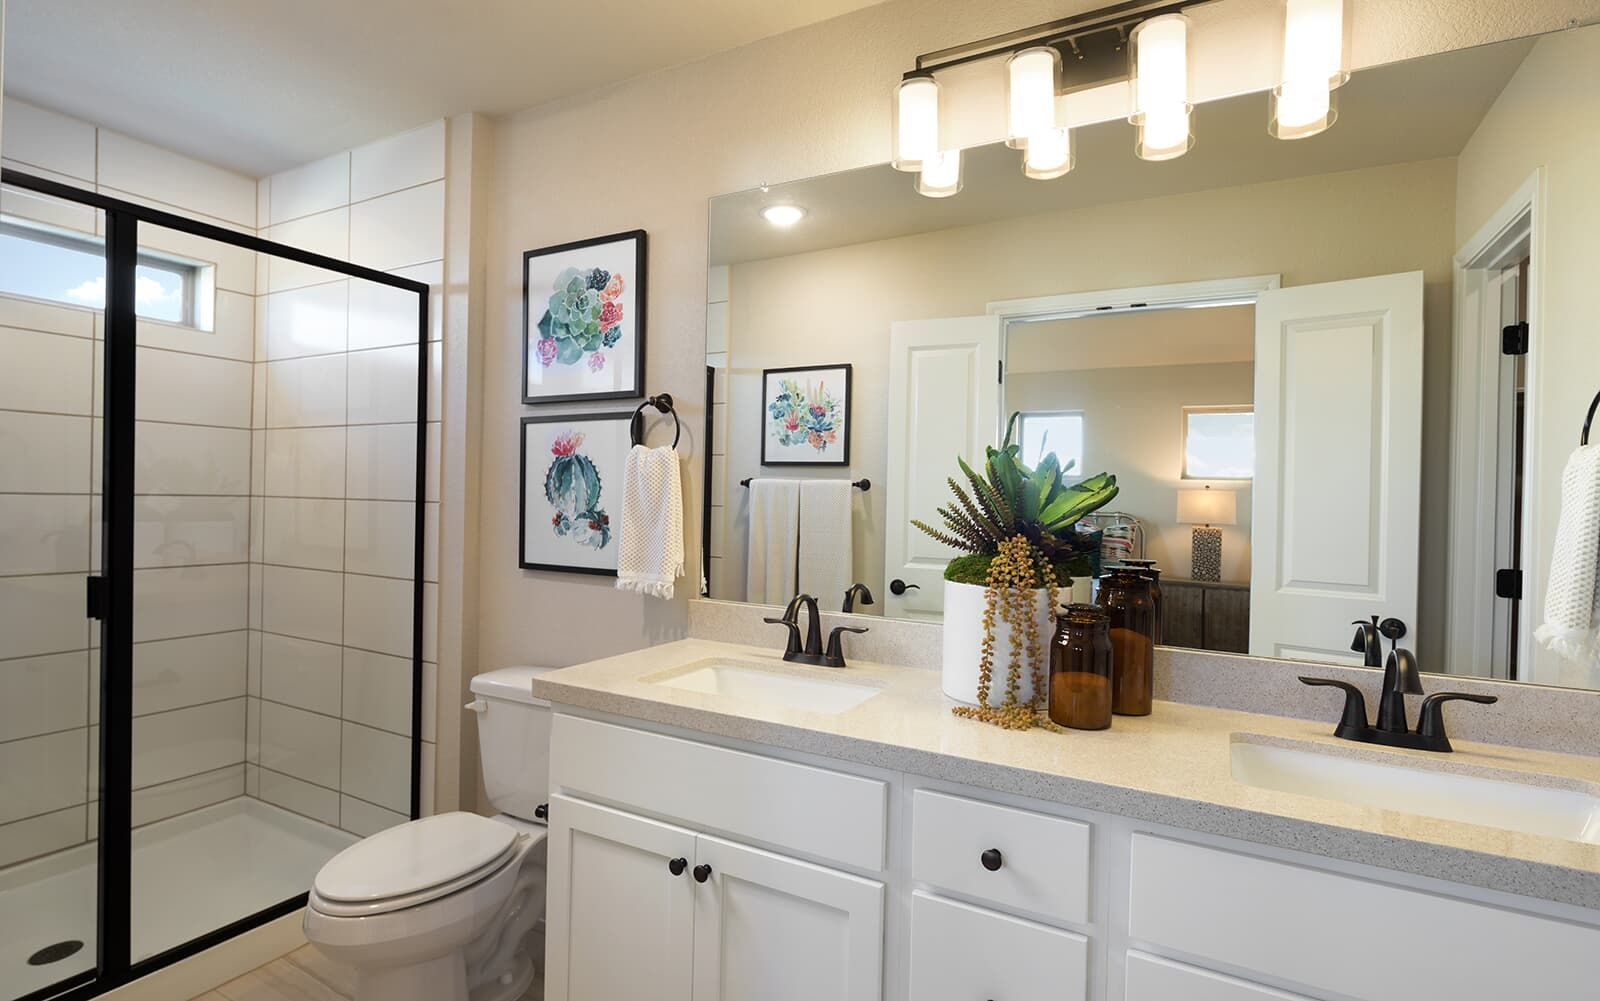 Bathroom featured in the Oakwood By Brookfield Residential in Austin, TX